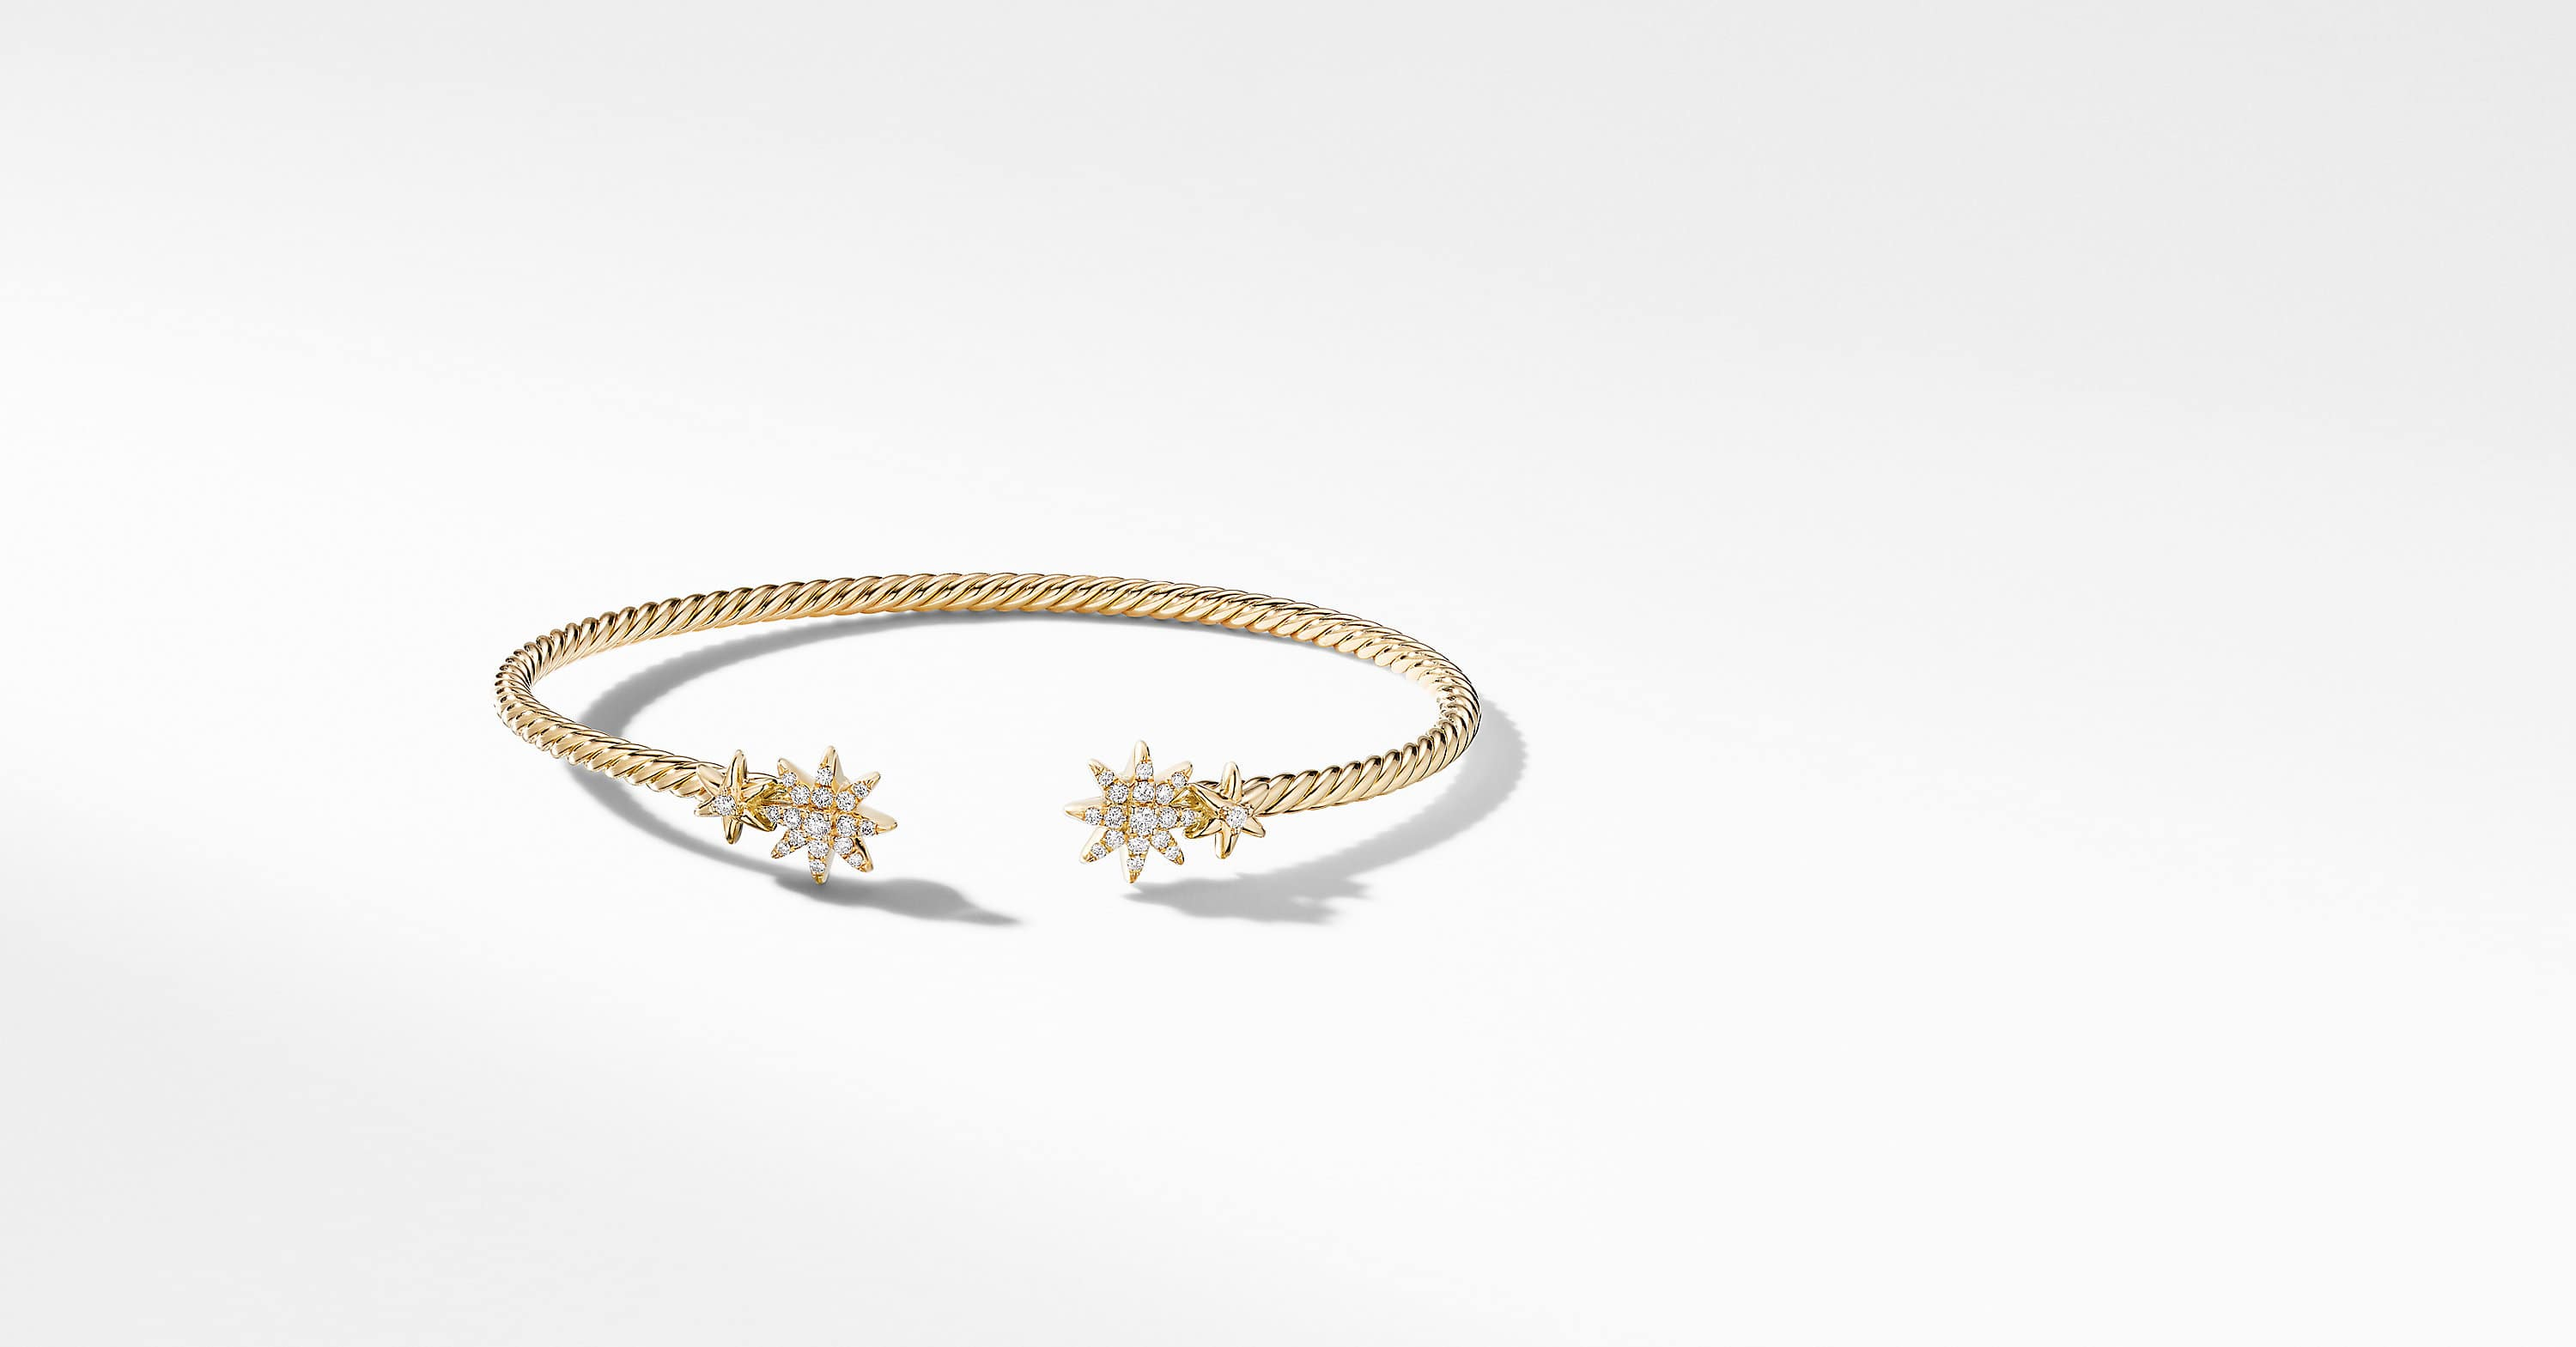 Petite Starburst Open Cable Bracelet in 18K Yellow Gold with Diamonds, 2.6mm